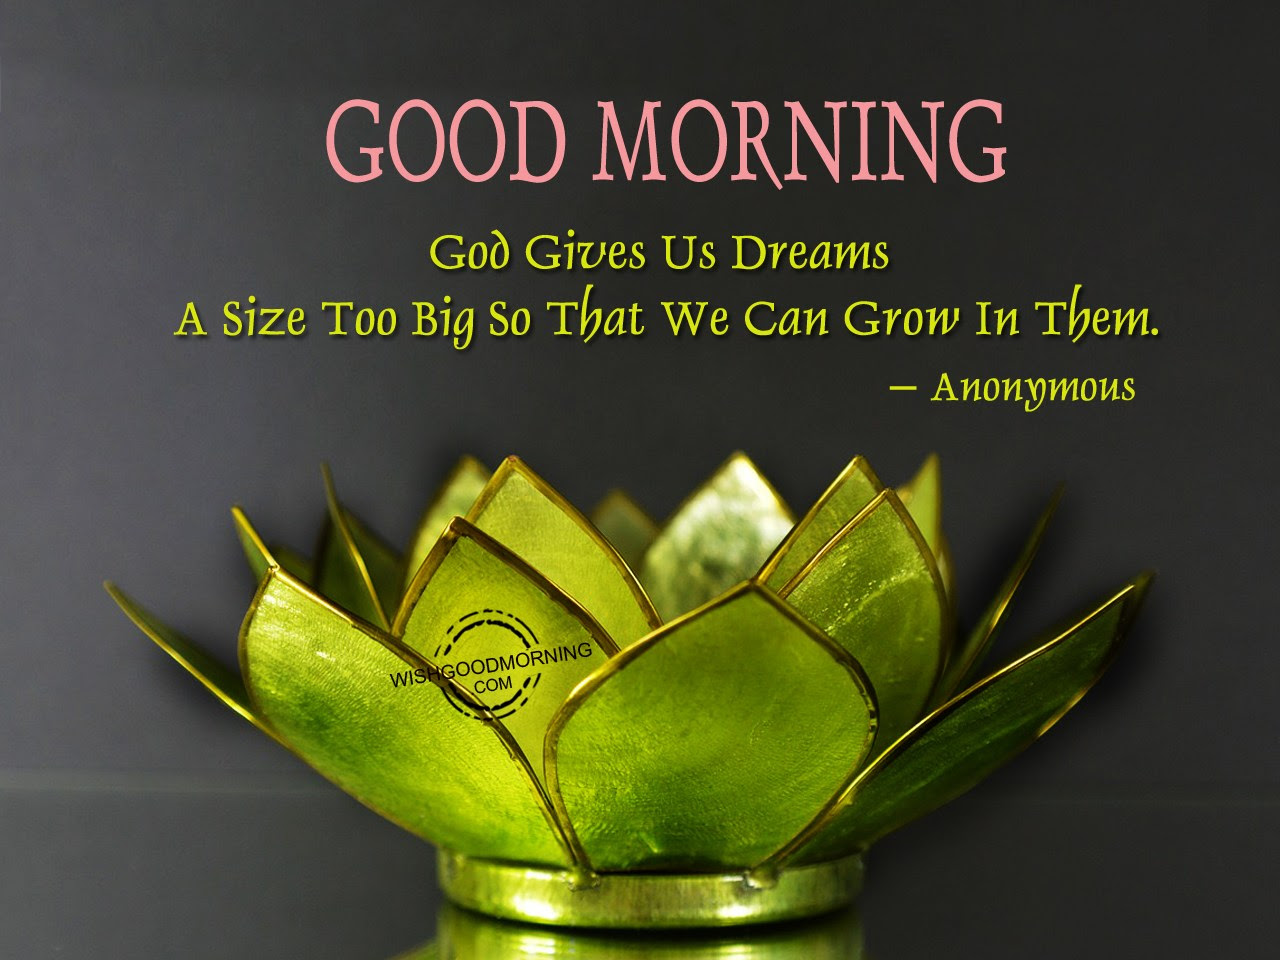 God Images With Good Morning Wishes Top Colection For Greeting And